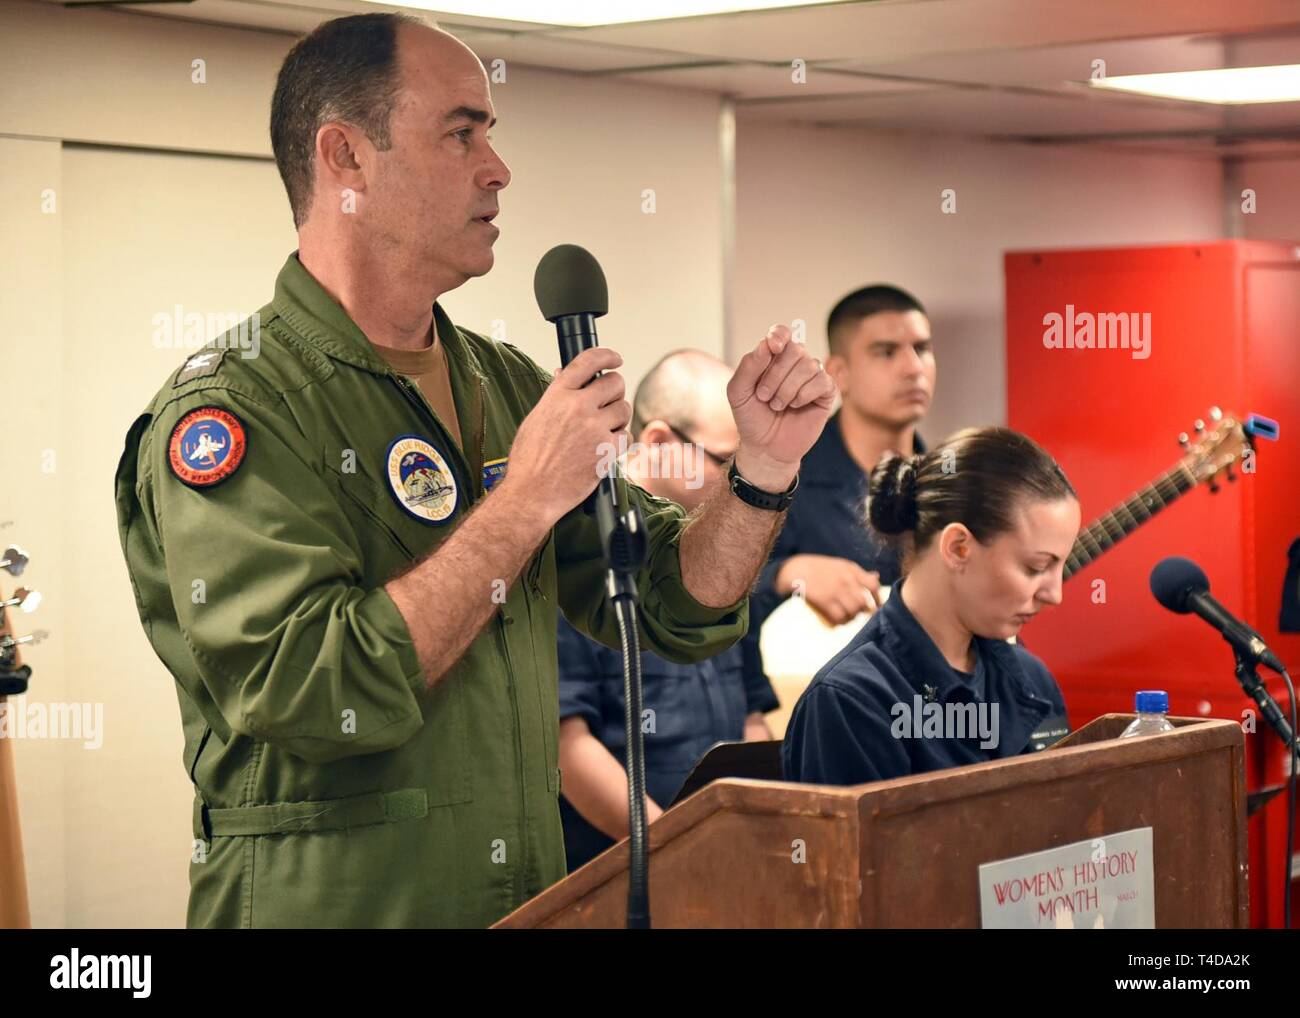 SOUTH CHINA SEA (March 22, 2019) - Capt. Eric J. Anduze, commanding officer of U.S. 7th Fleet Flagship USS Blue Ridge (LCC 19), speaks during a Women's History Month celebration on the ship's mess decks. Blue Ridge is the oldest operational ship in the Navy and, as 7th Fleet command ship, actively works to foster relationships with allies and partners in the Indo-Pacific Region. - Stock Image